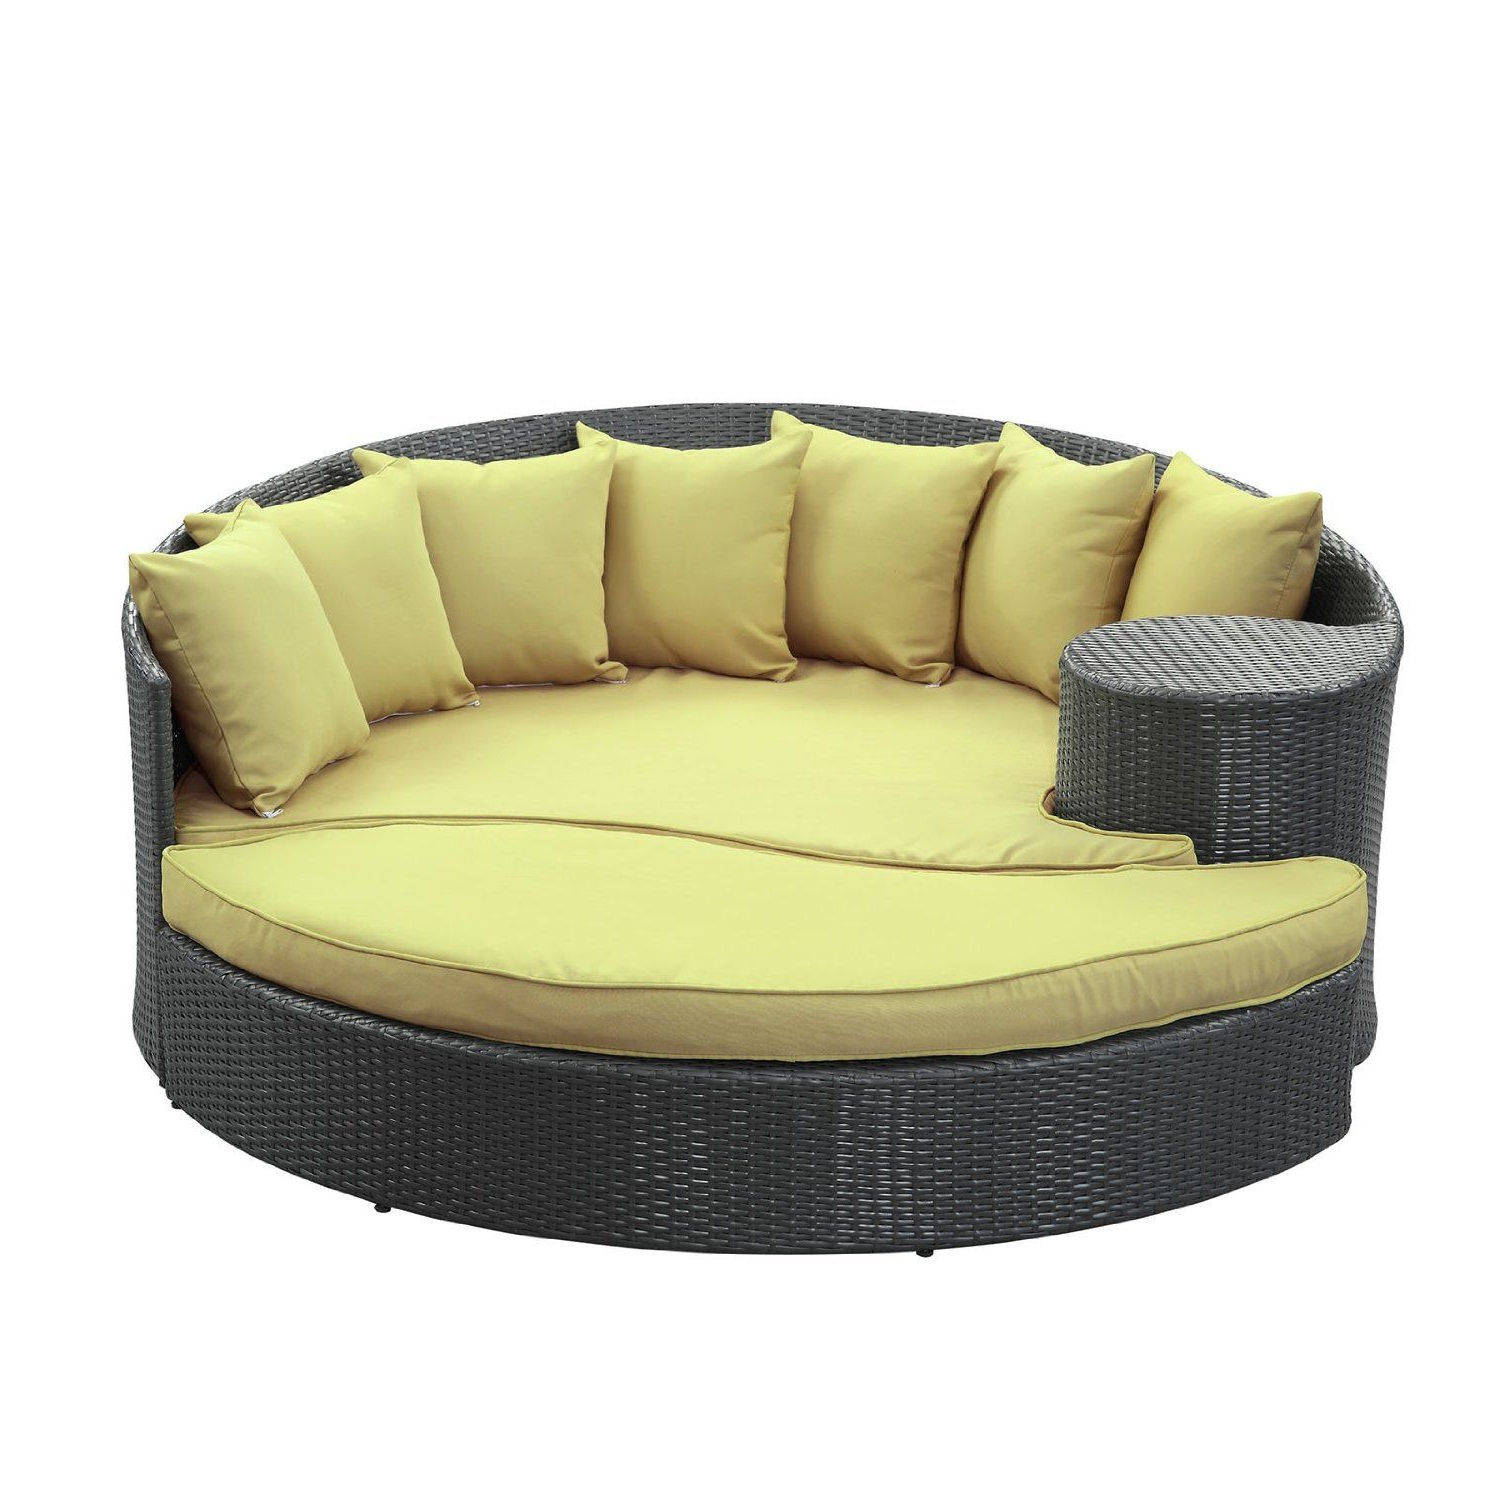 Current Amazon : Lexmod Taiji Outdoor Wicker Patio Daybed With Within Greening Outdoor Daybeds With Ottoman & Cushions (View 2 of 20)